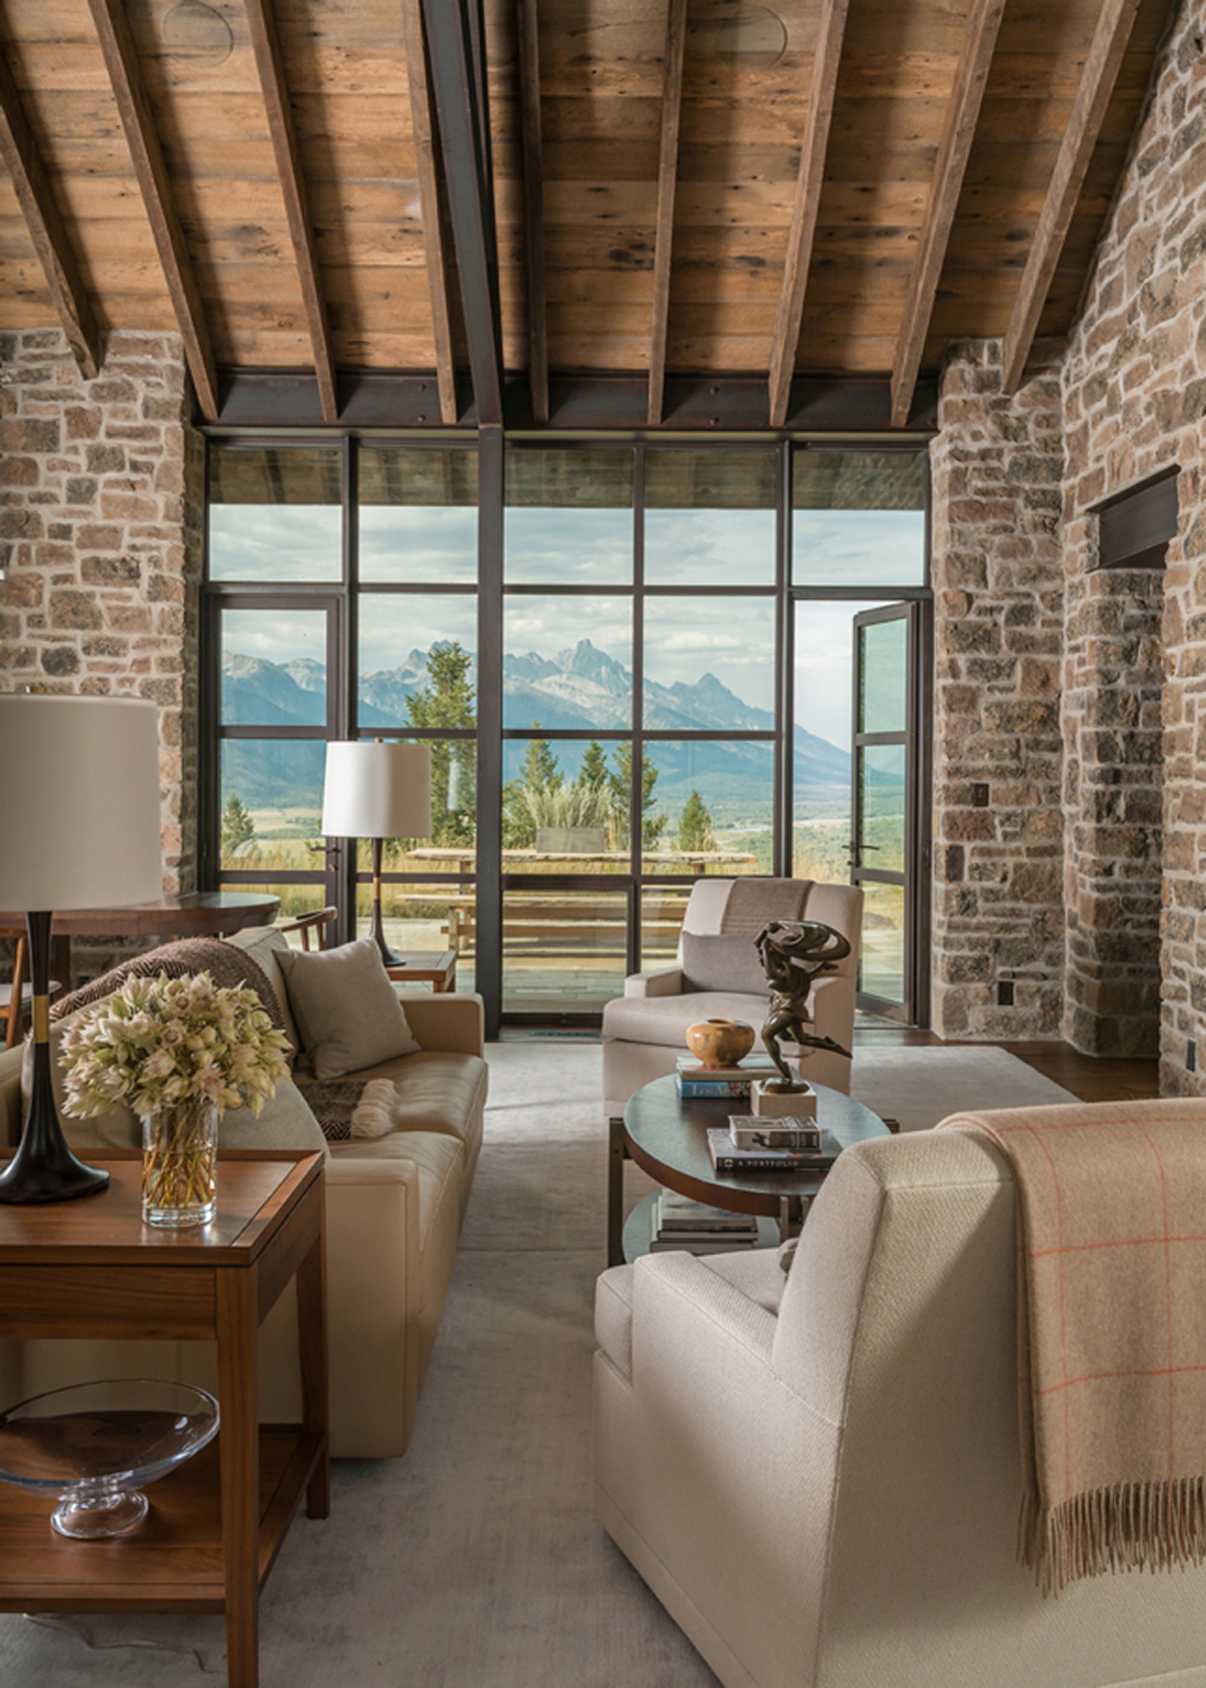 stunning award winning living room interiors | WRJ Design Jackson Hole Home Interiors Featured in New ...